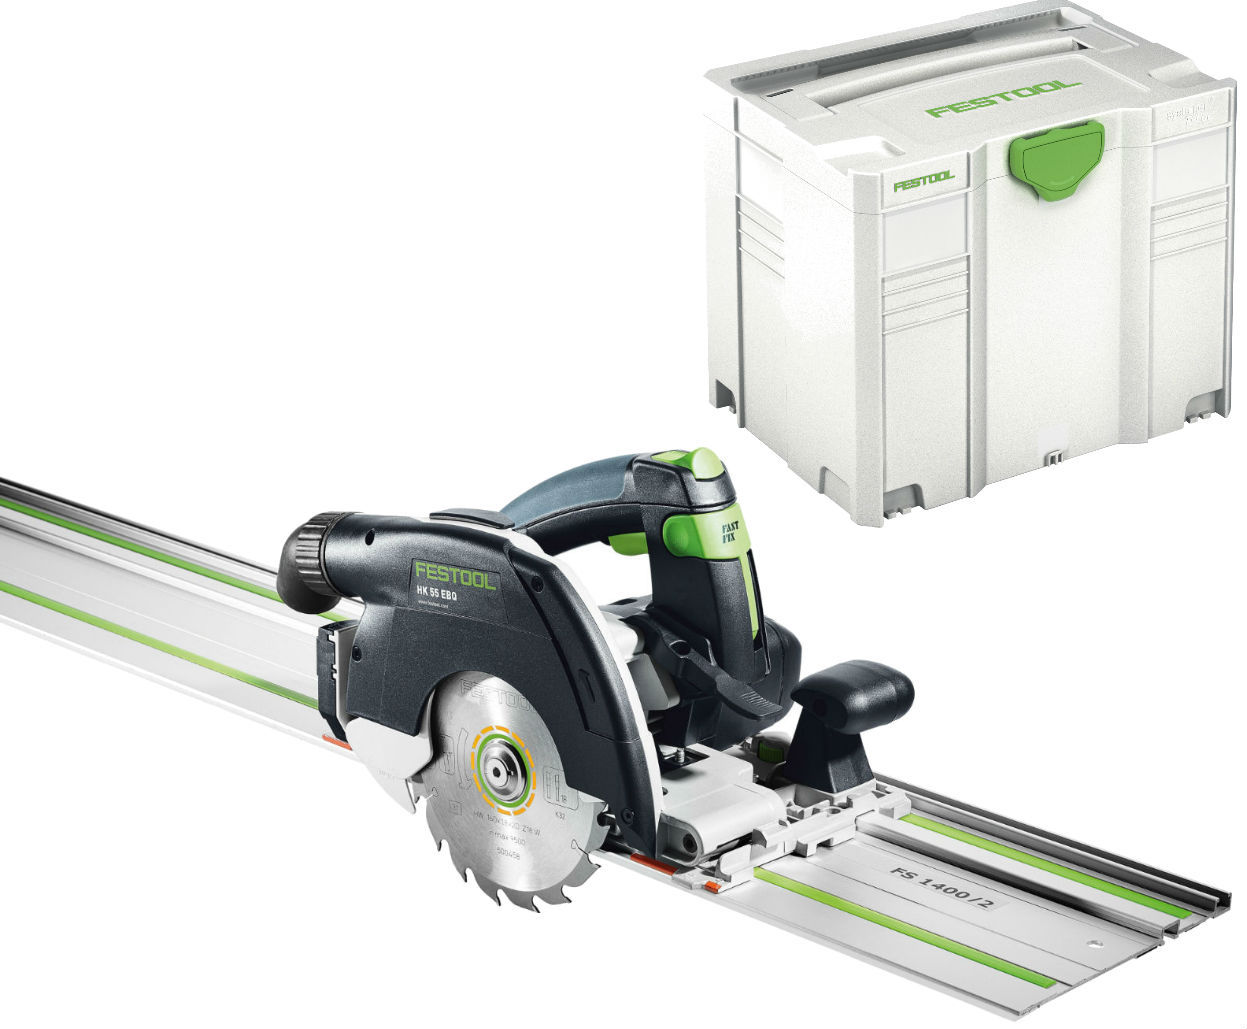 Дисковая пила HK 55 EBQ-Plus-FS Festool 574673